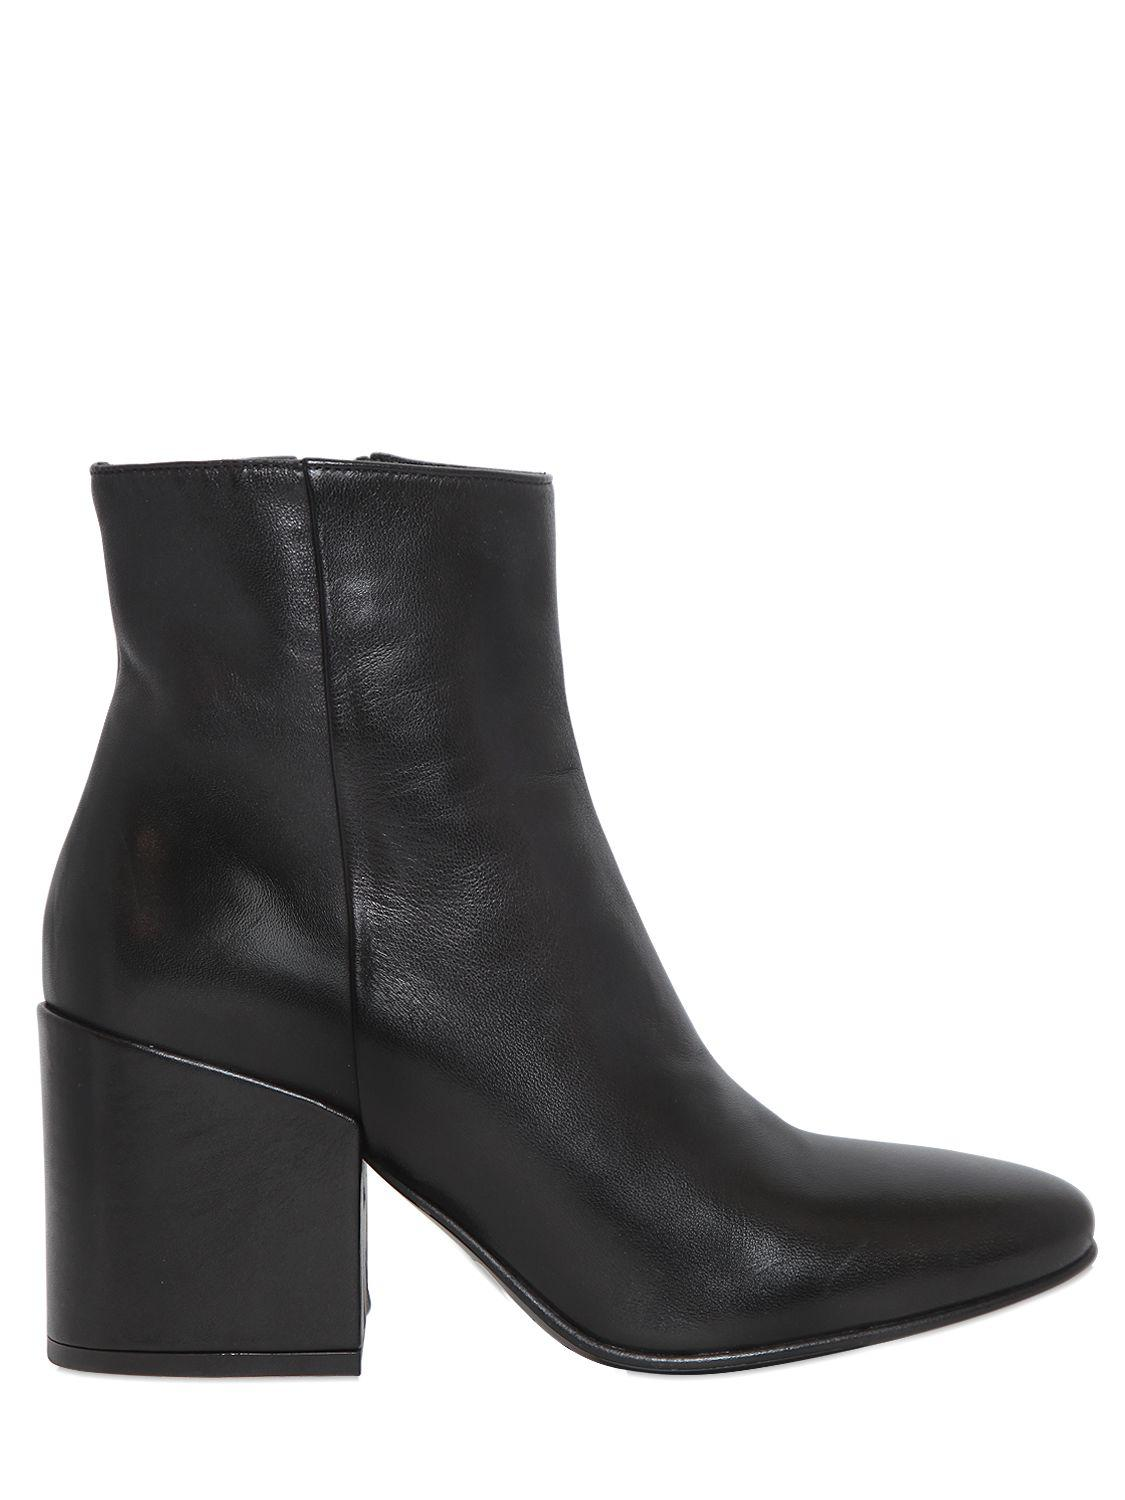 Strategia 70MM SMOOTH LEATHER ANKLE BOOTS JwXNMx7